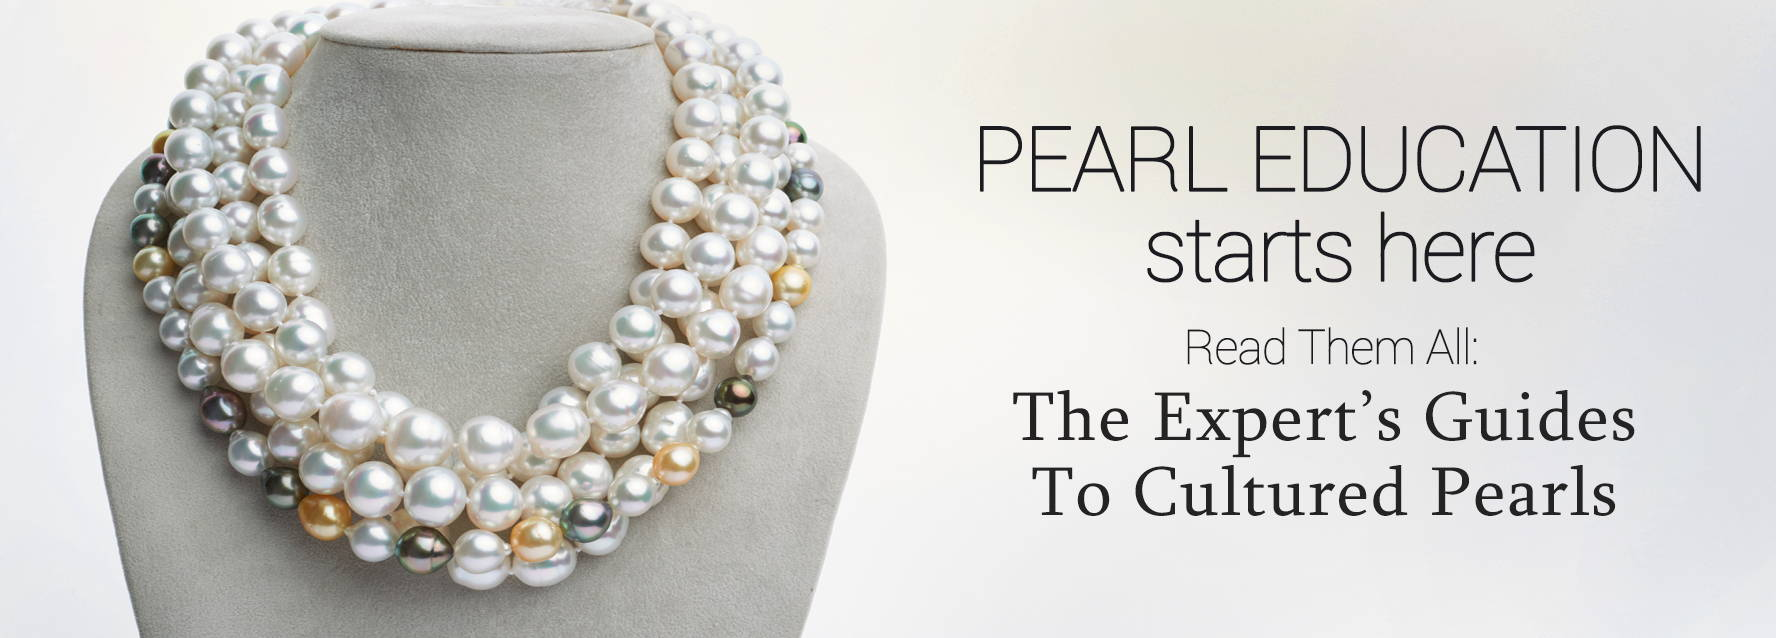 Pearl Education: Learn About Cultured Pearls